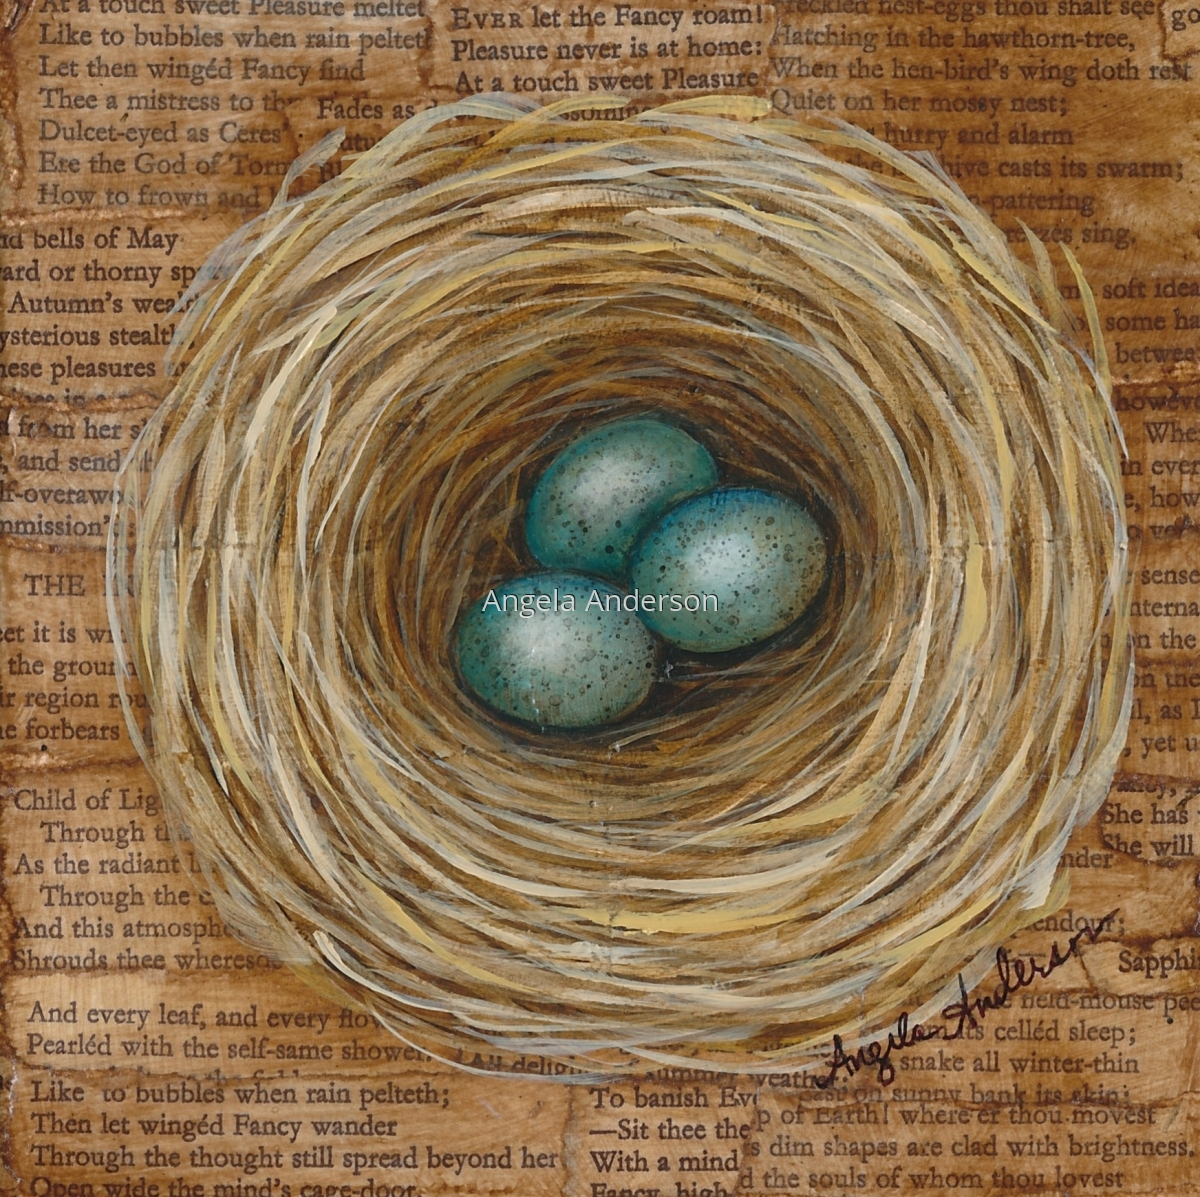 Original acrylic painting on canvas by artist Angela Anderson.  Mixed media with poetry behind a bird's nest with beautiful, speckled blue eggs. (large view)